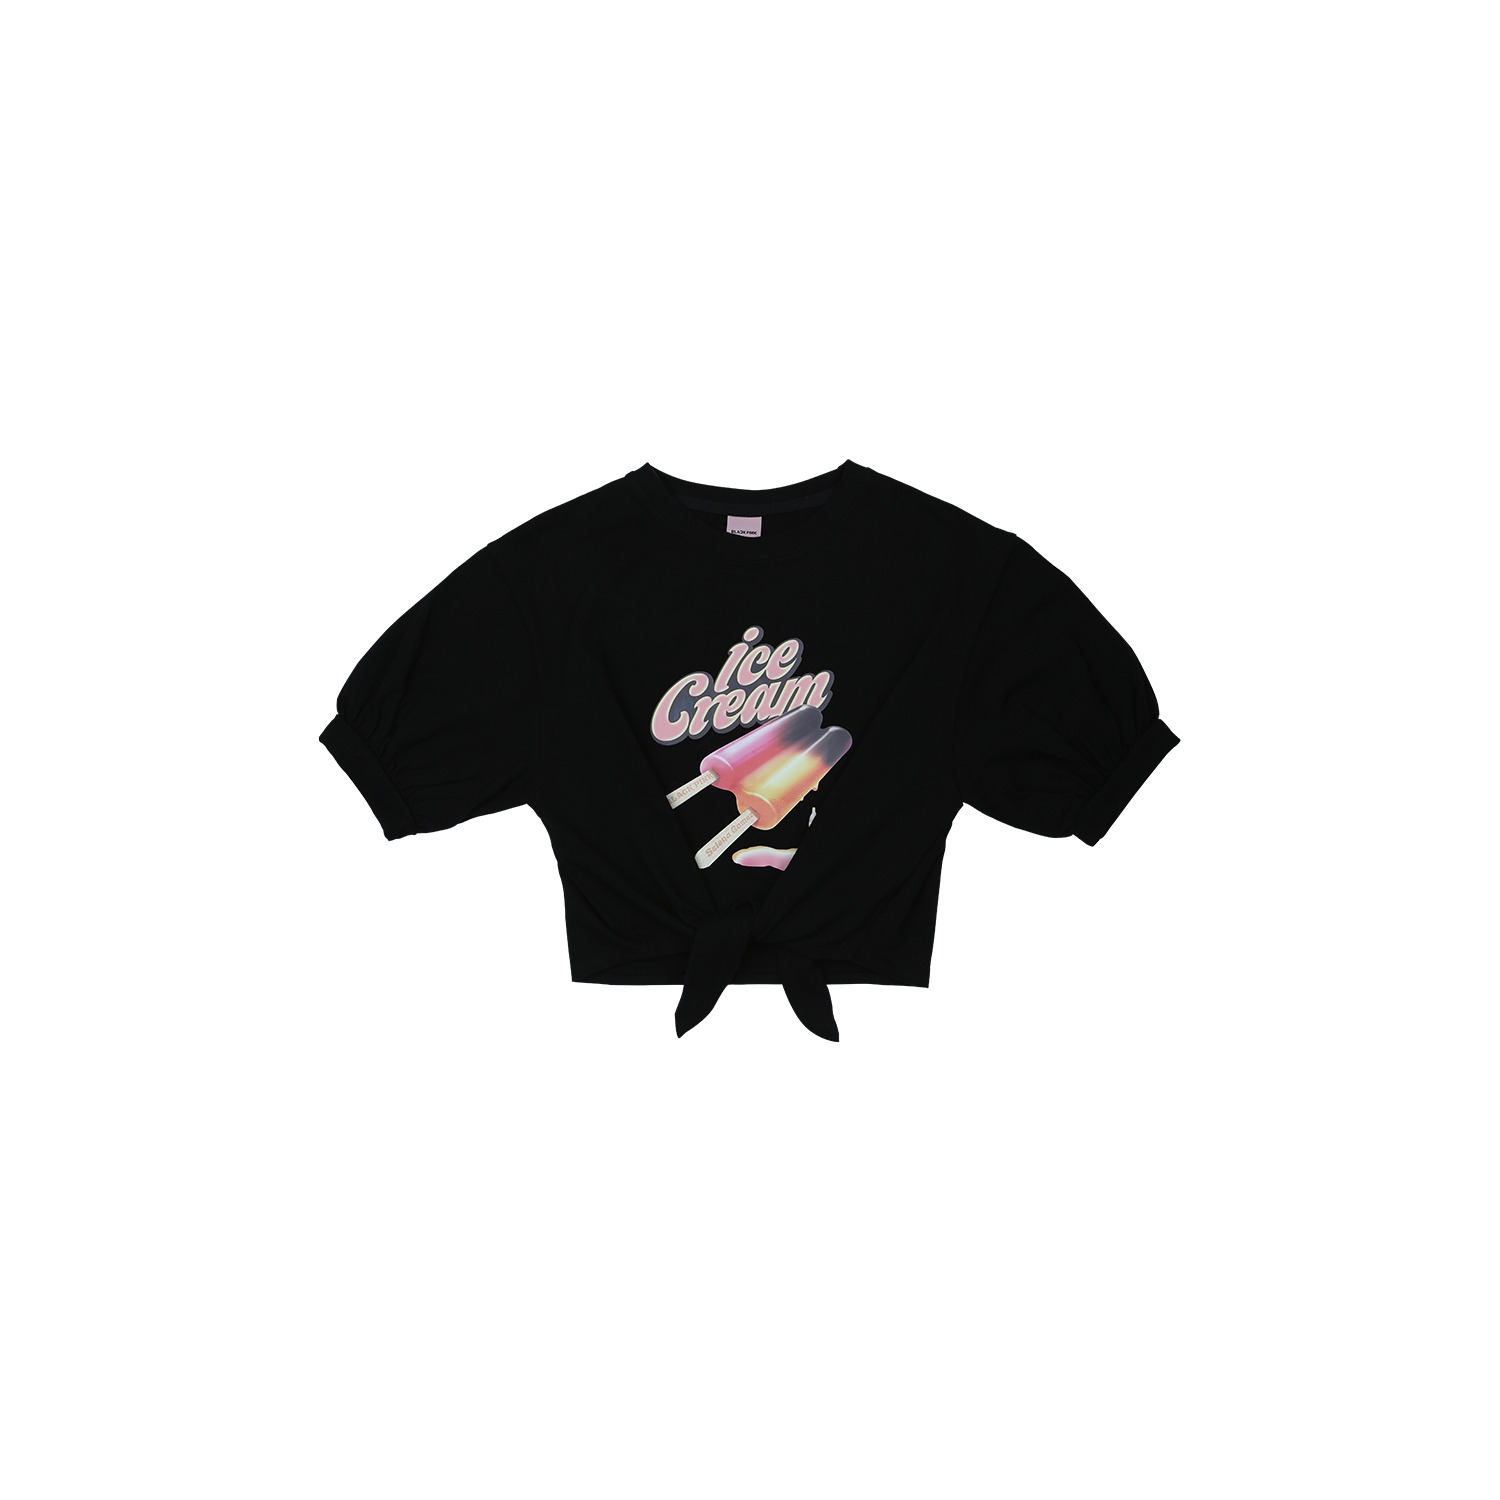 [ICECREAM] BLACKPINK T-SHIRTS_TIE-UP_ICECREAM BAR_BLACK